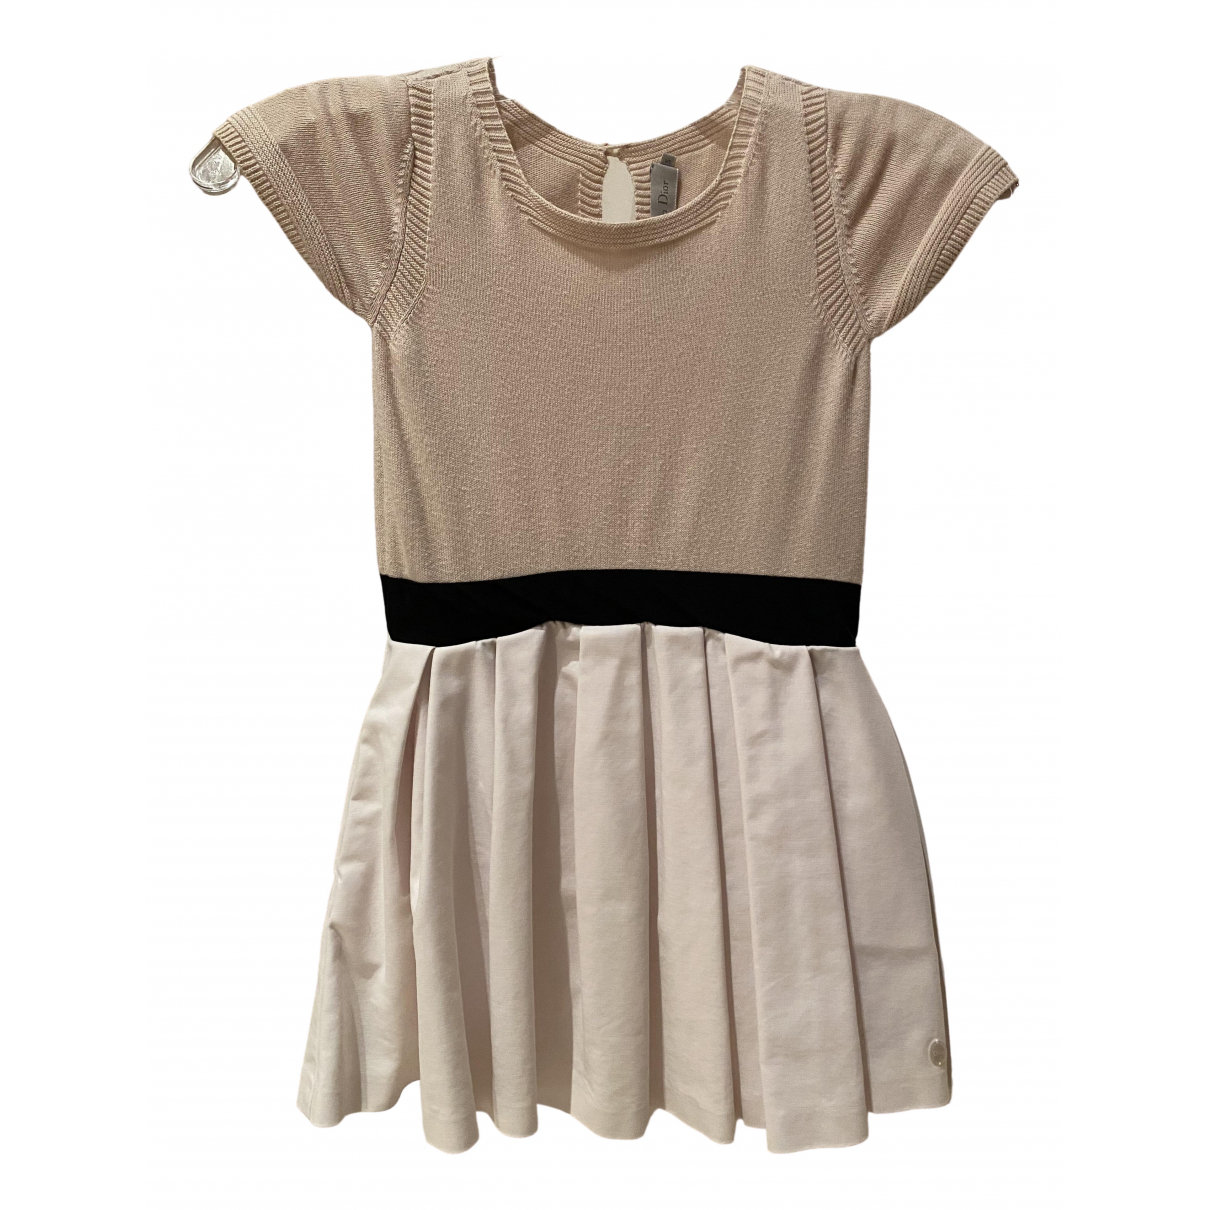 Dior \N Beige Cotton dress for Kids 5 years - up to 108cm FR